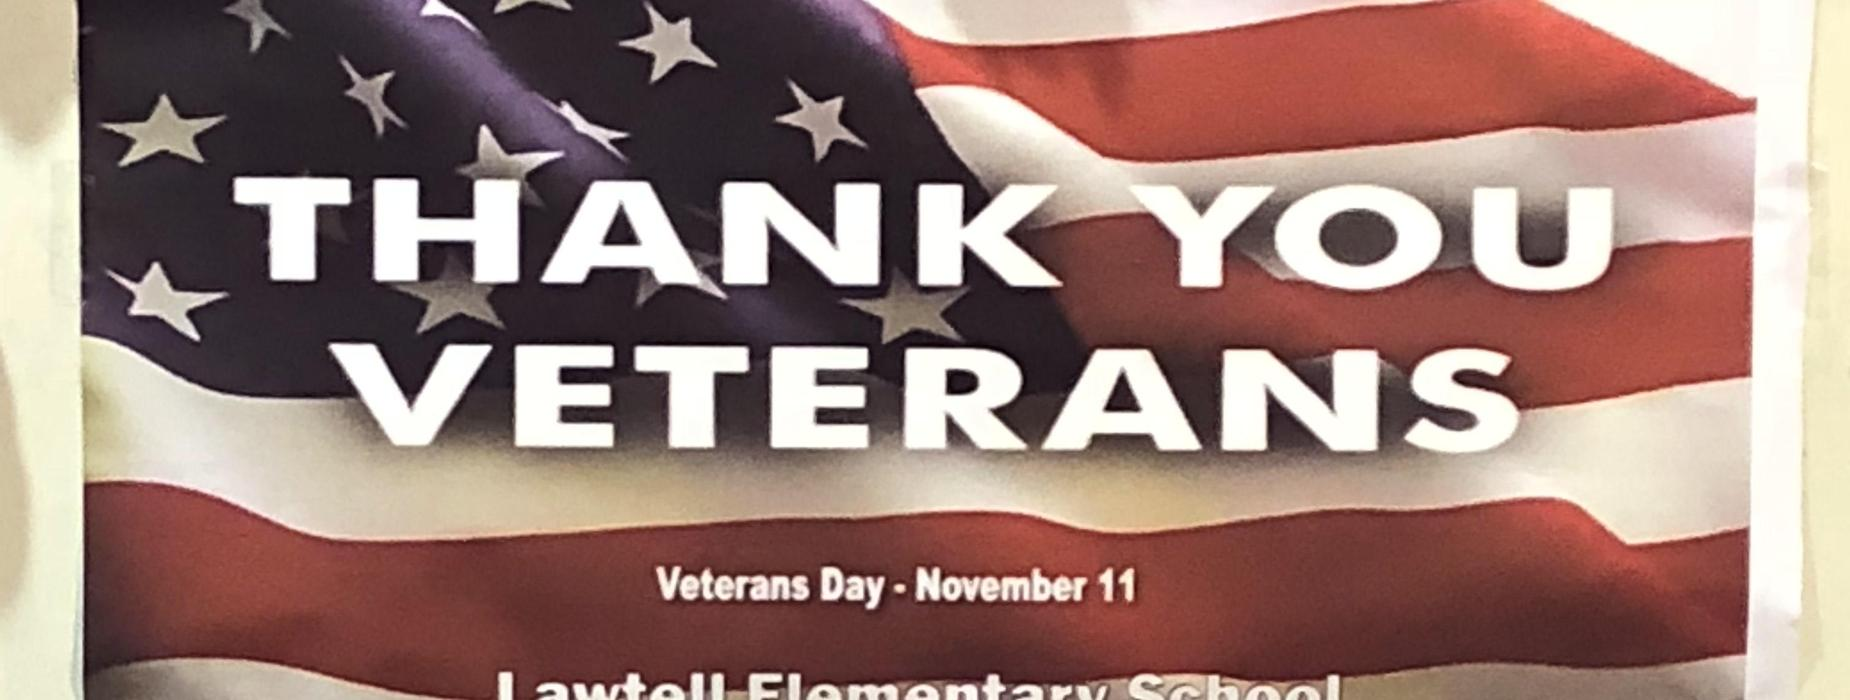 Giving thanks to our veterans